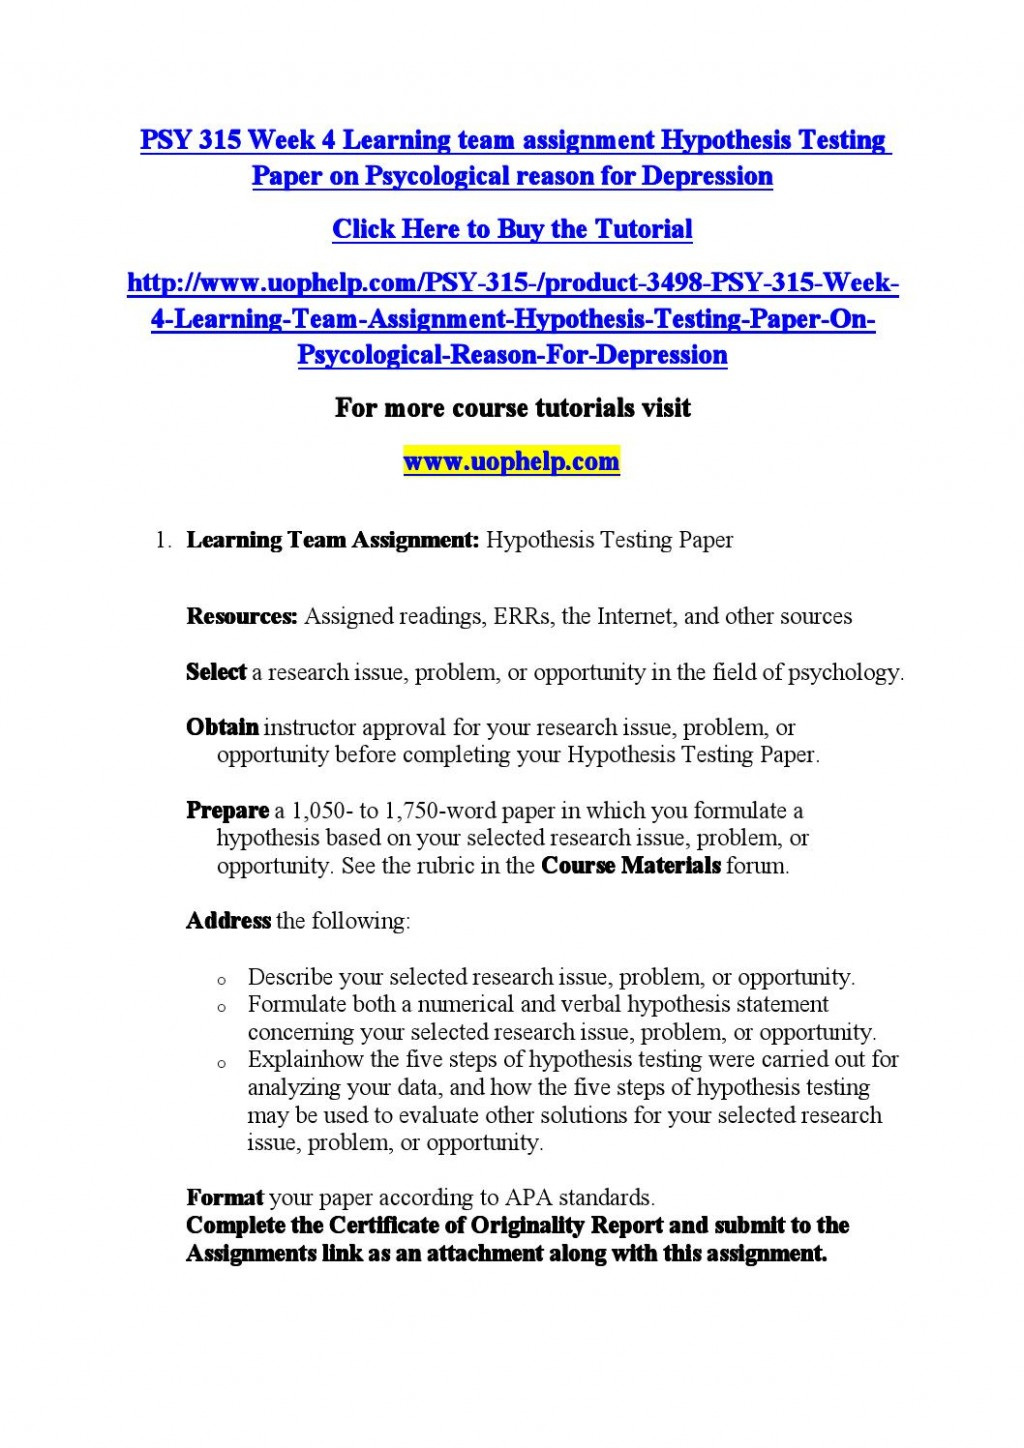 008 Page 1 Research Paper Hypothesis Testing Awesome In Pdf Large